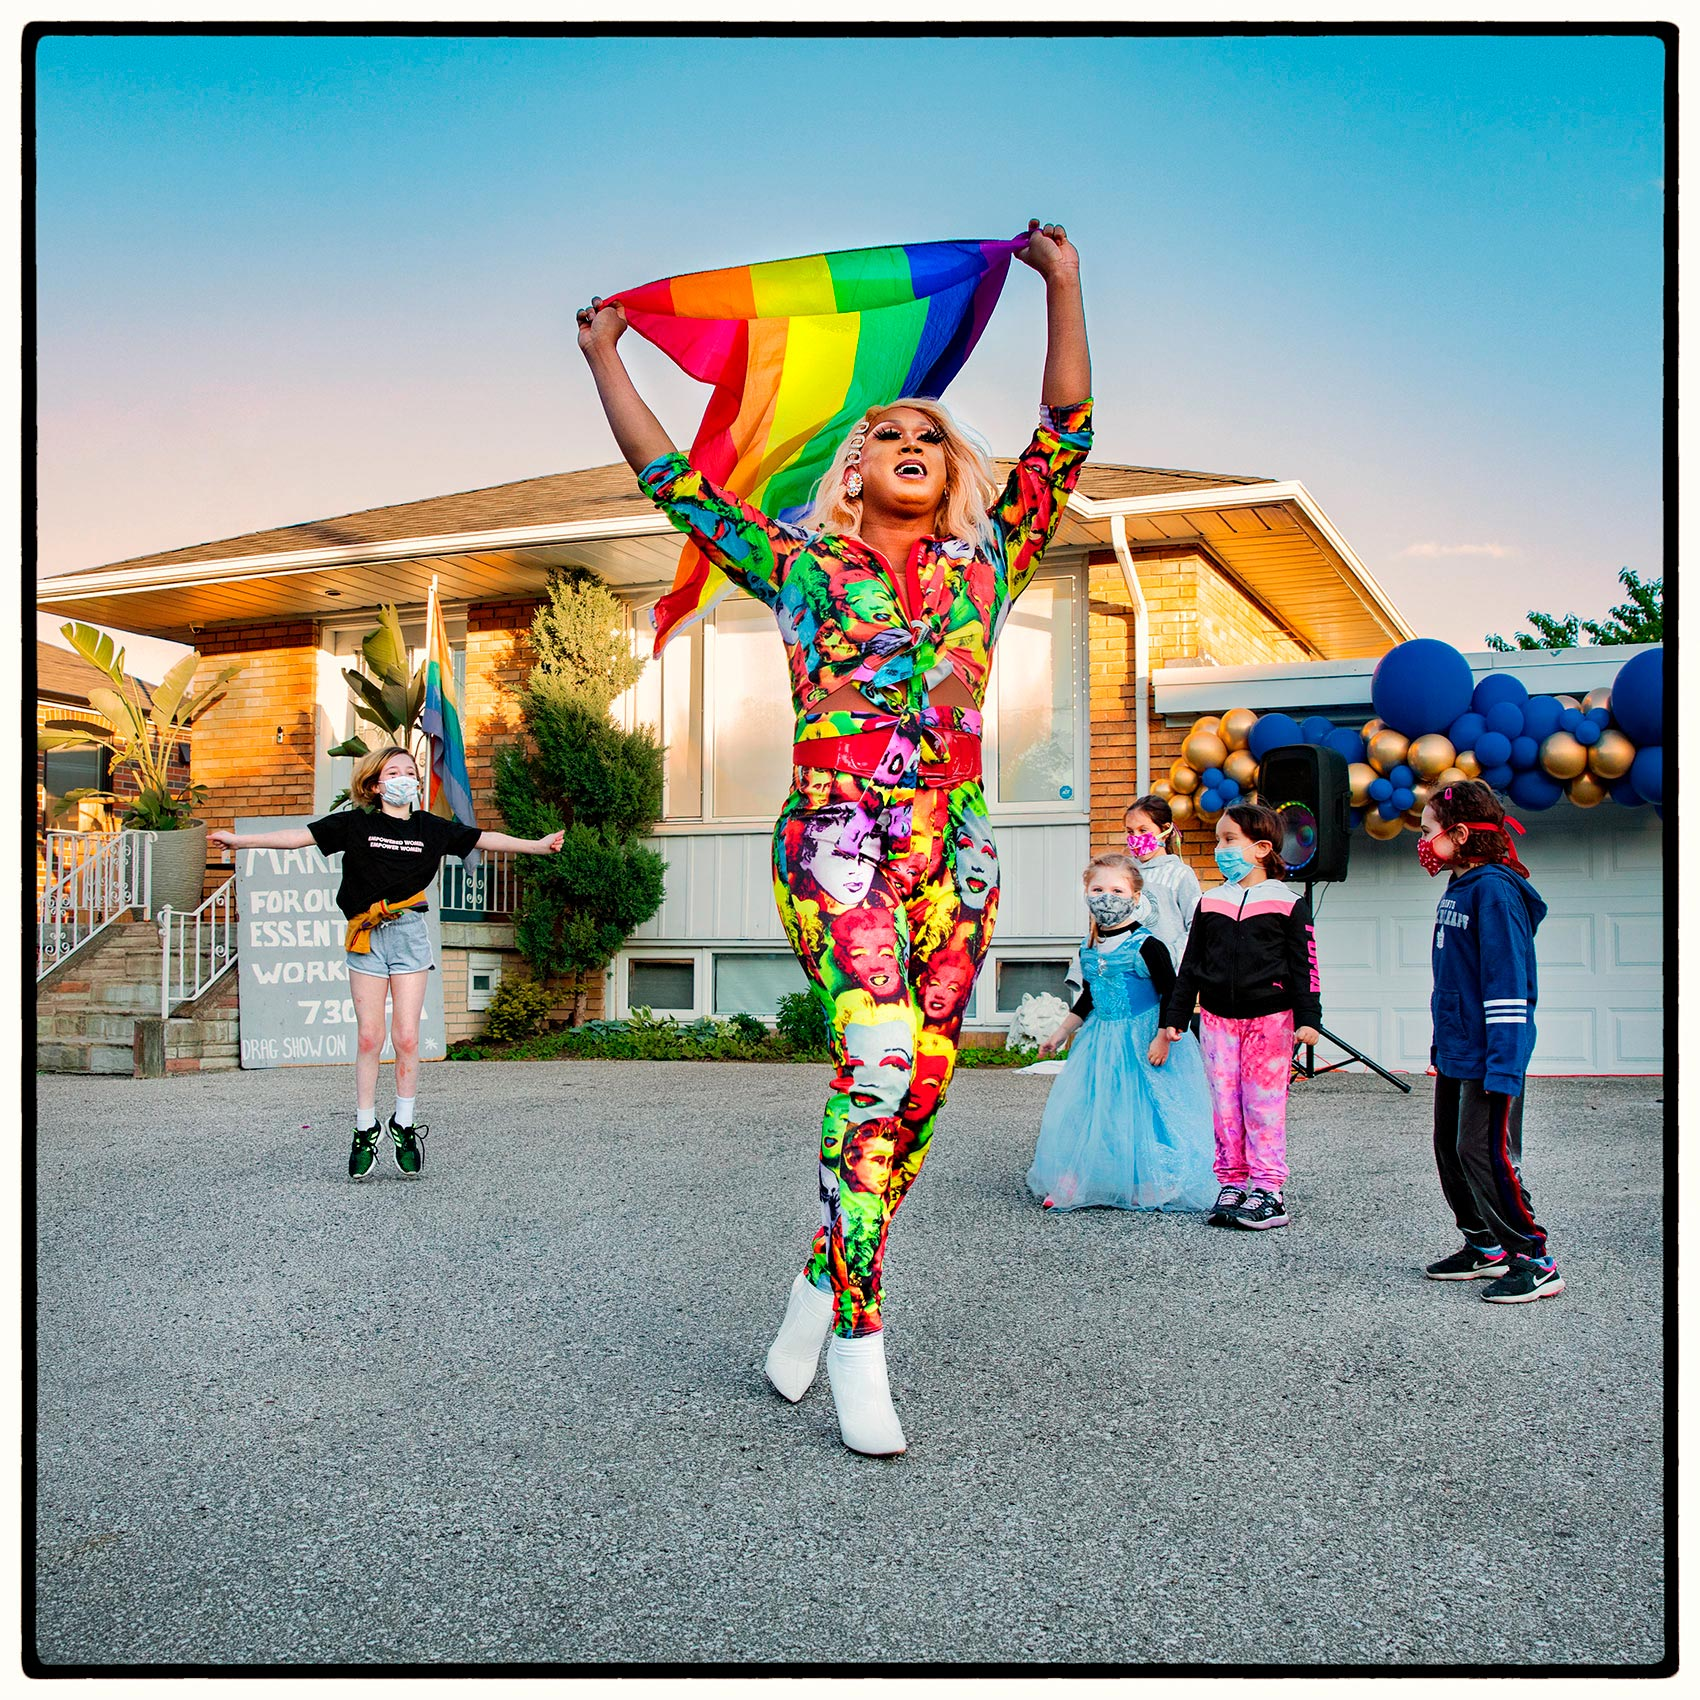 A drag queen holds up a pride flag during a suburban show in Toronto